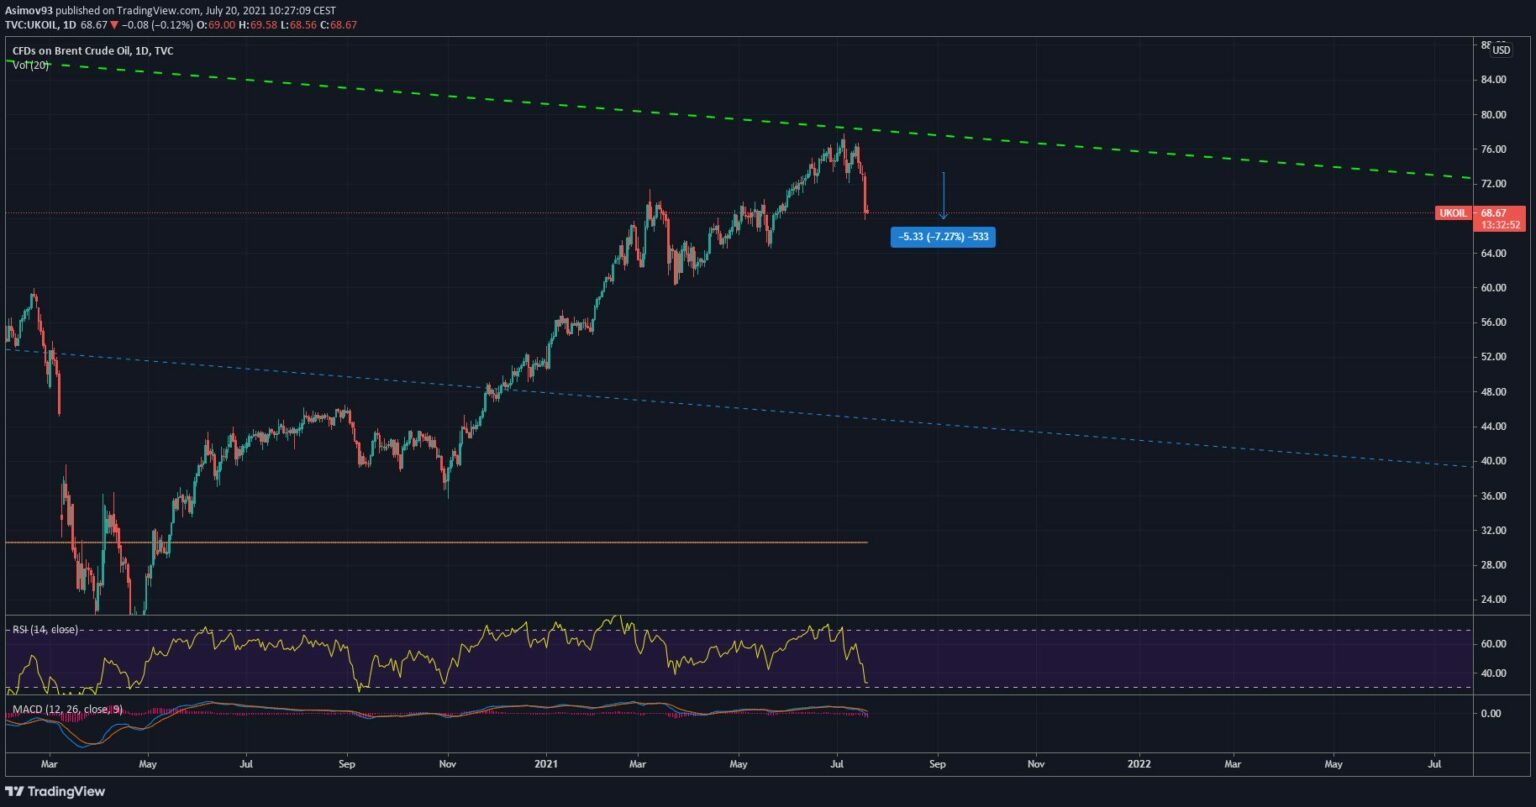 Does the market believe that is the end of the bull run?